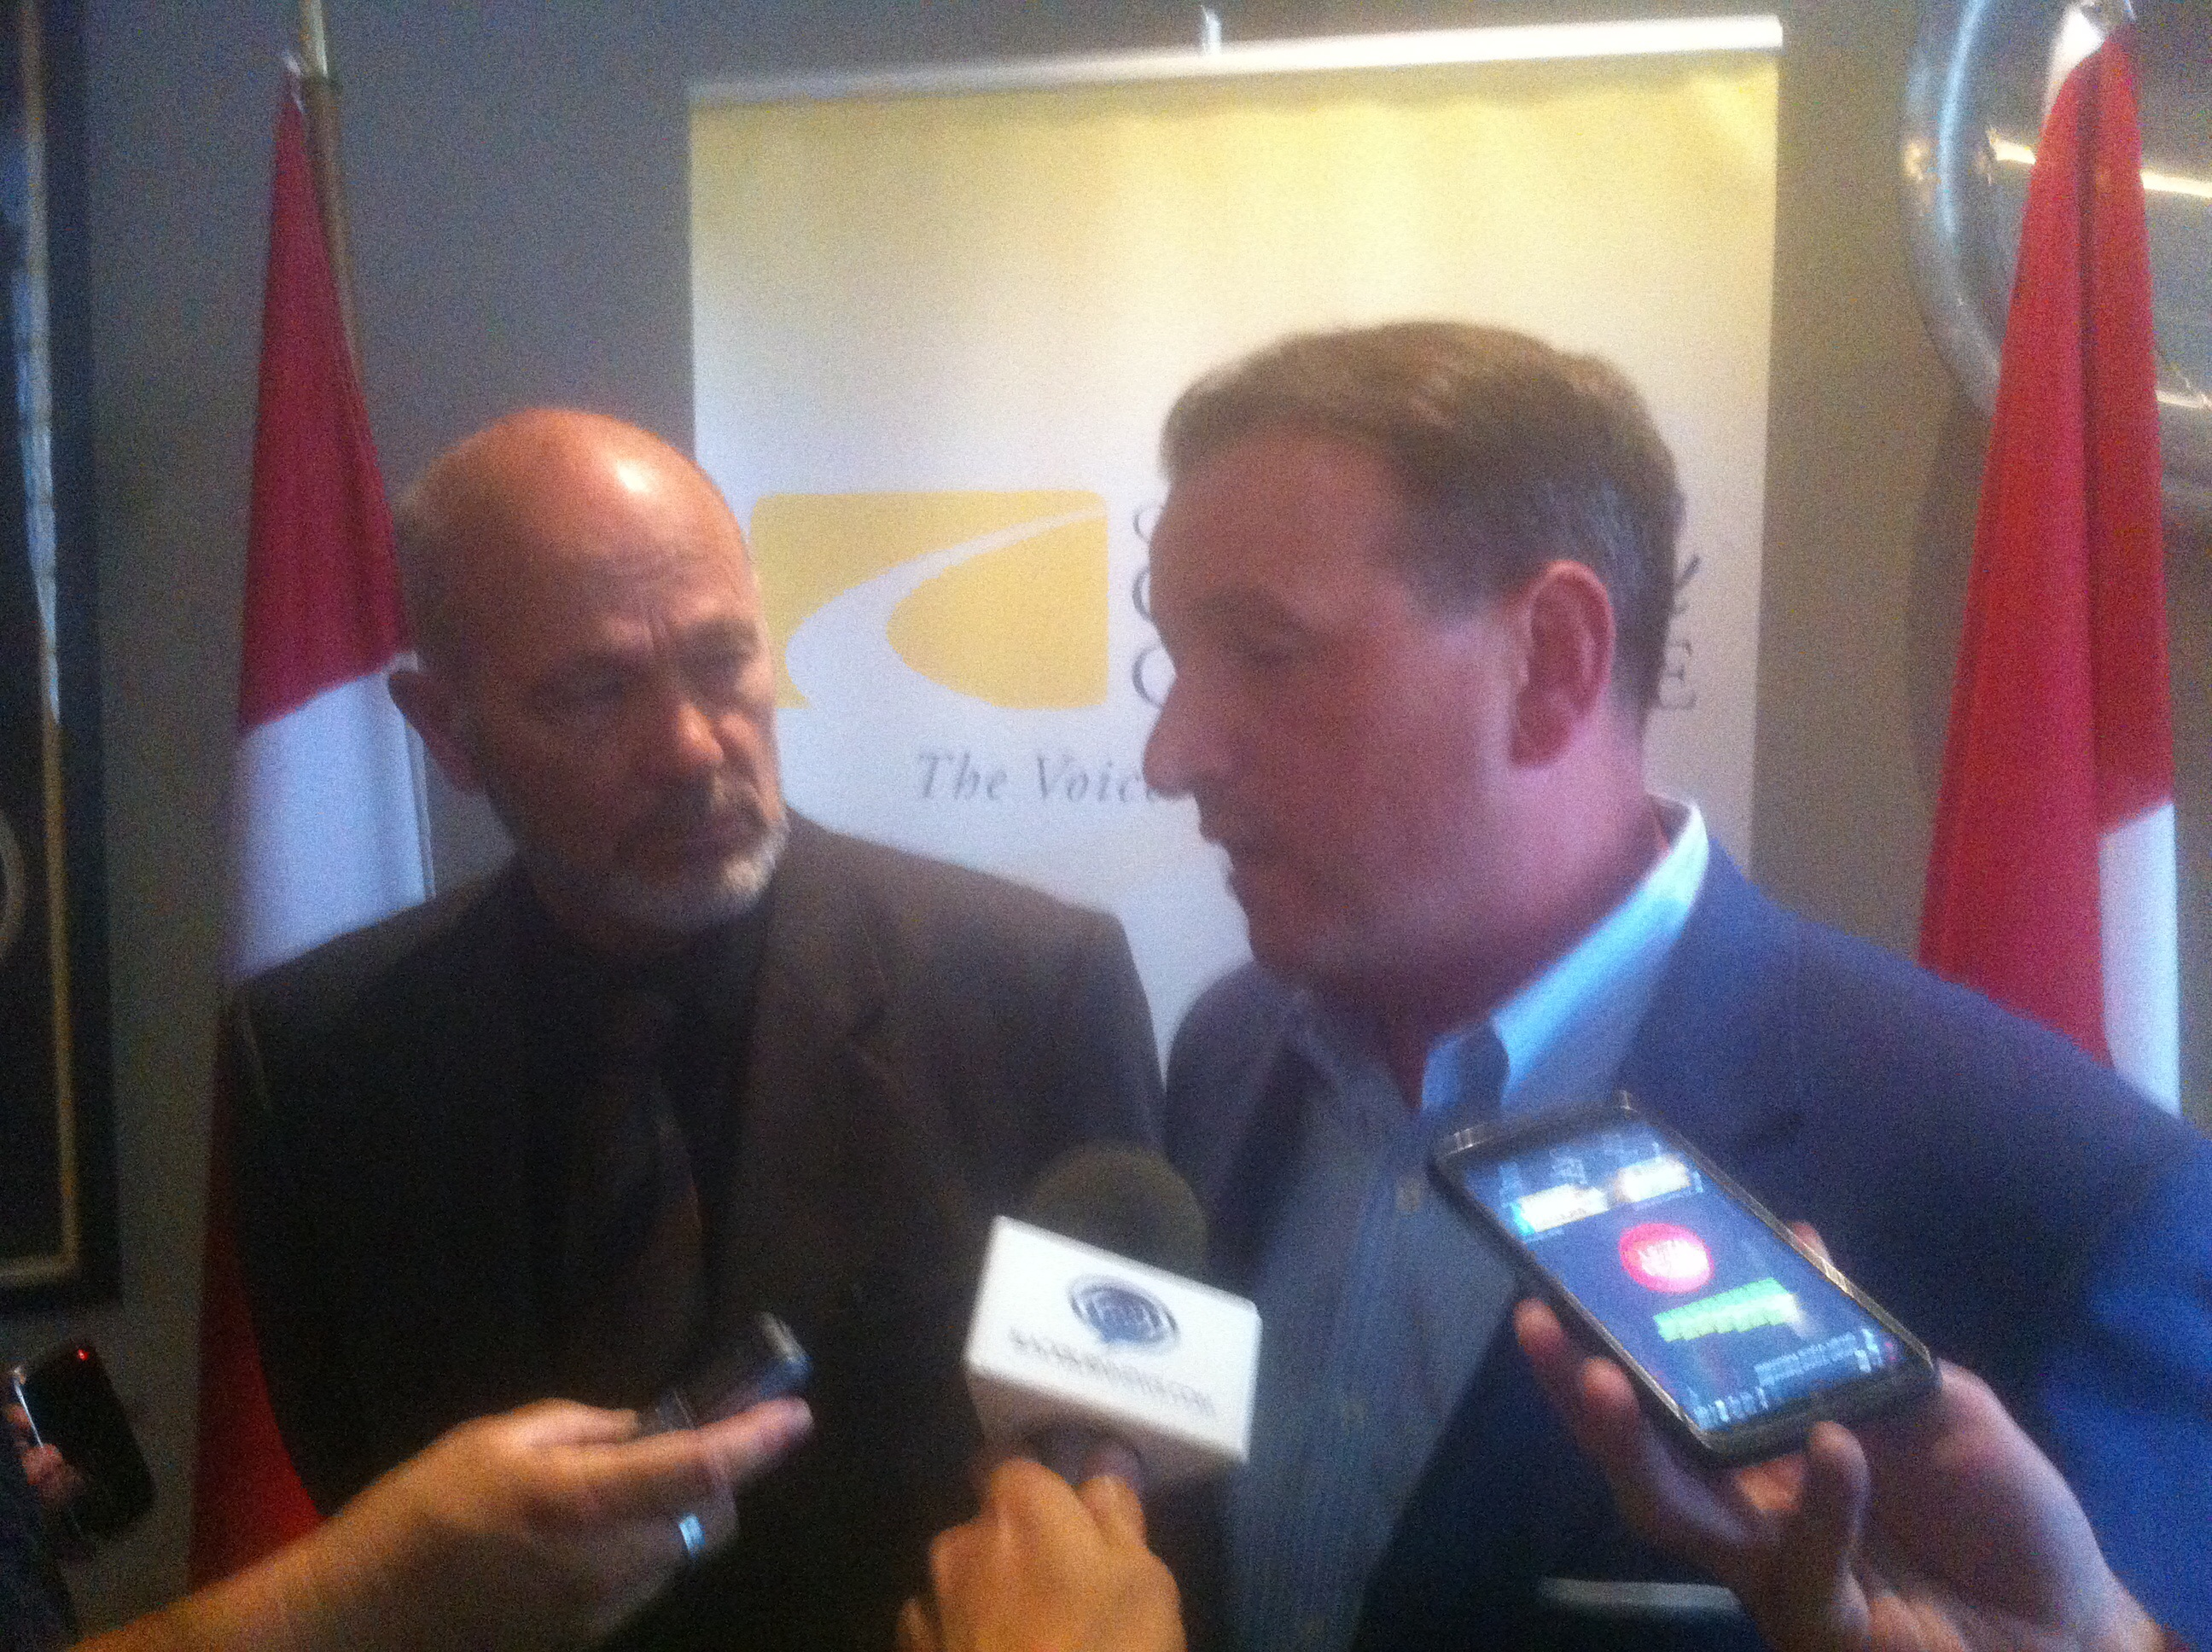 Minister of Natural Resources Greg Rickford (right) and Chatham-Kent-Essex MP Dave Van Kesteren (left) speaks with media following a luncheon in Chatham.